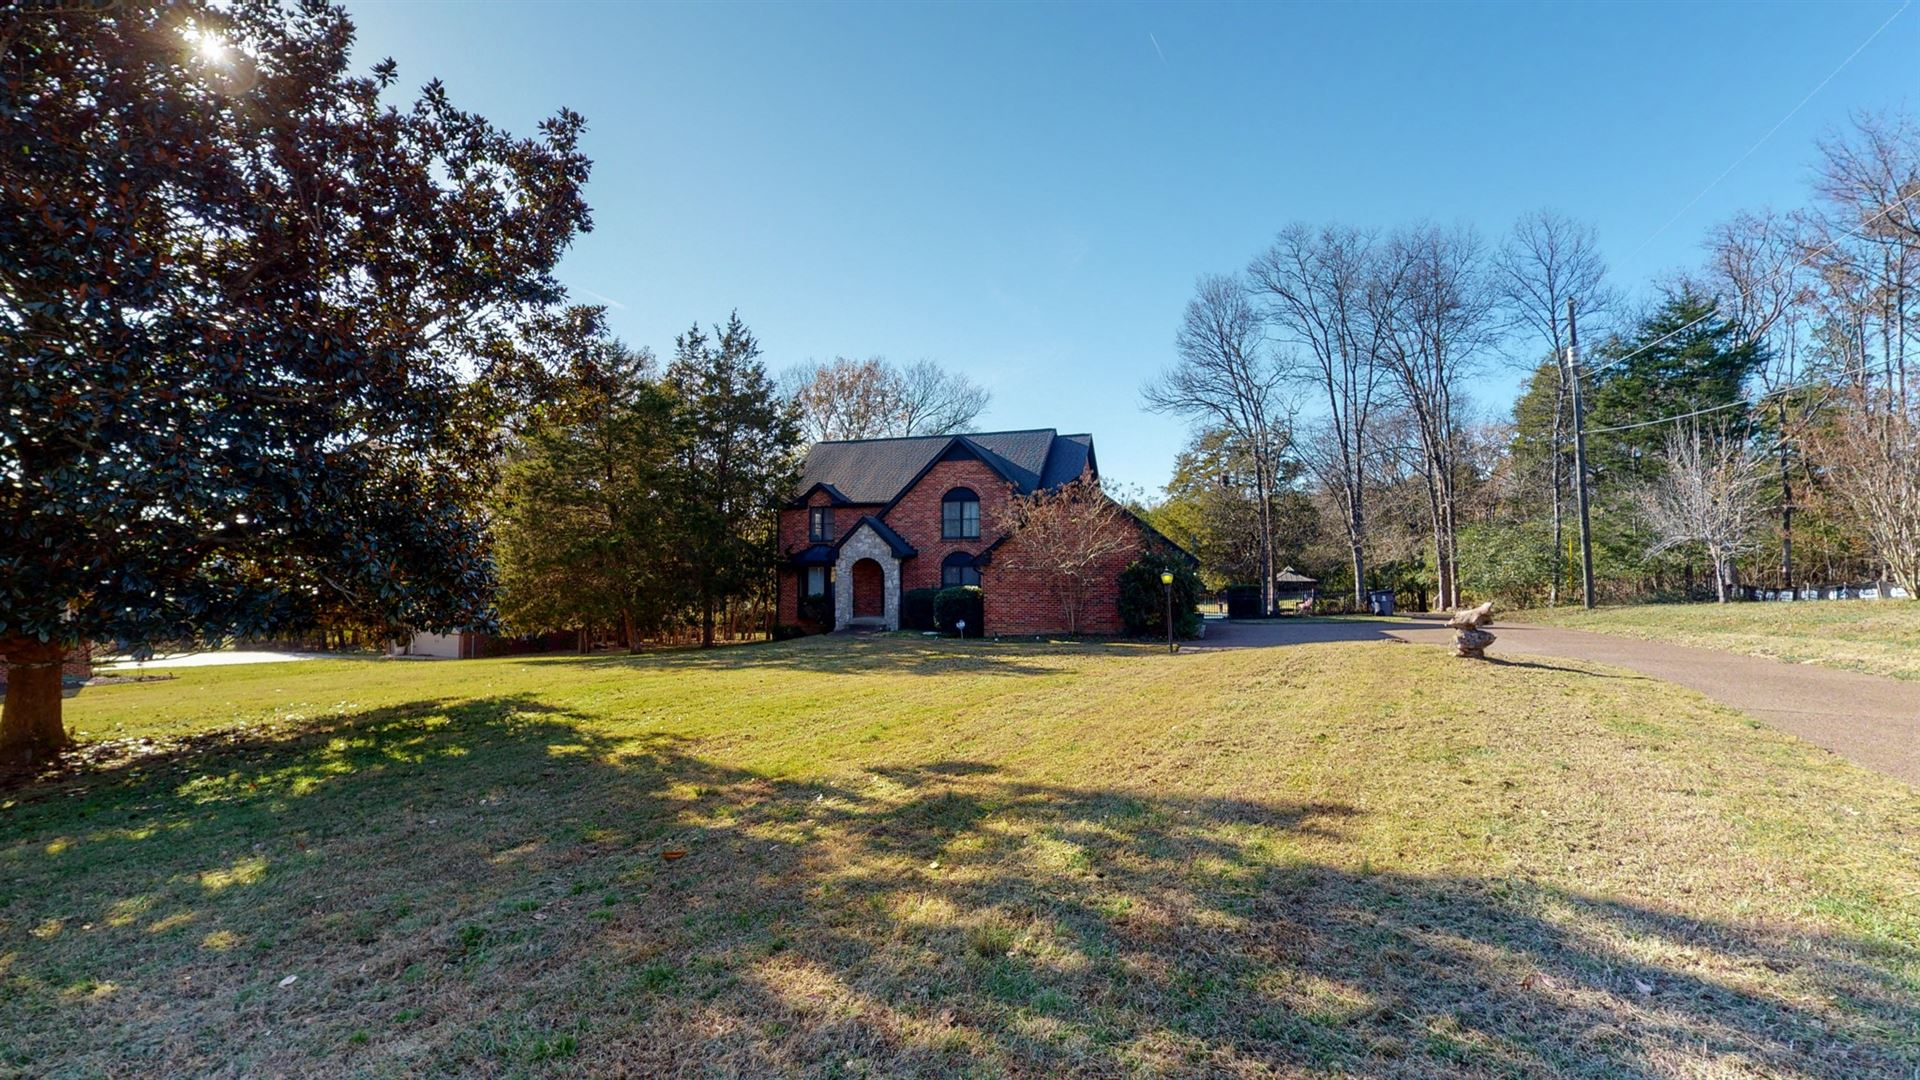 3396 Earhart Rd, Mount Juliet, TN 37122 - MLS#: 2208677